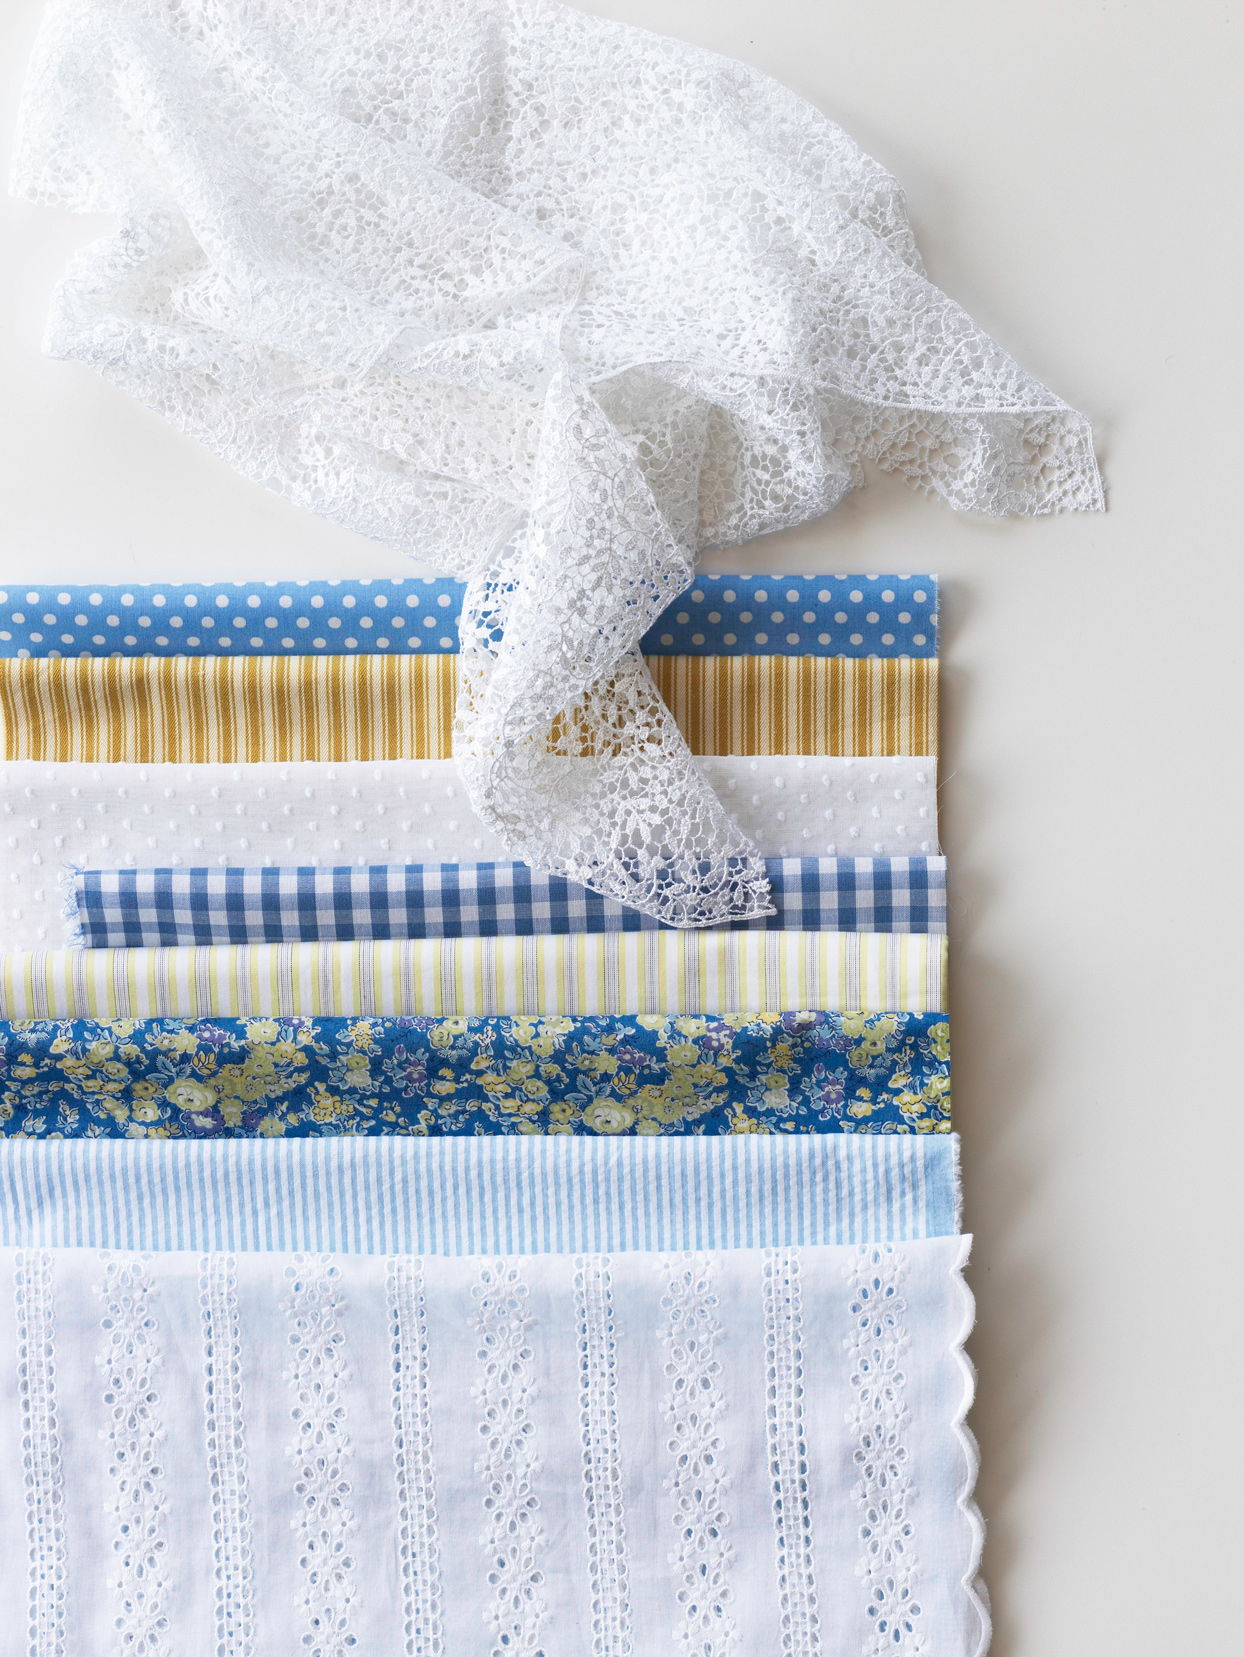 blue and yellow patterned cotton fabric